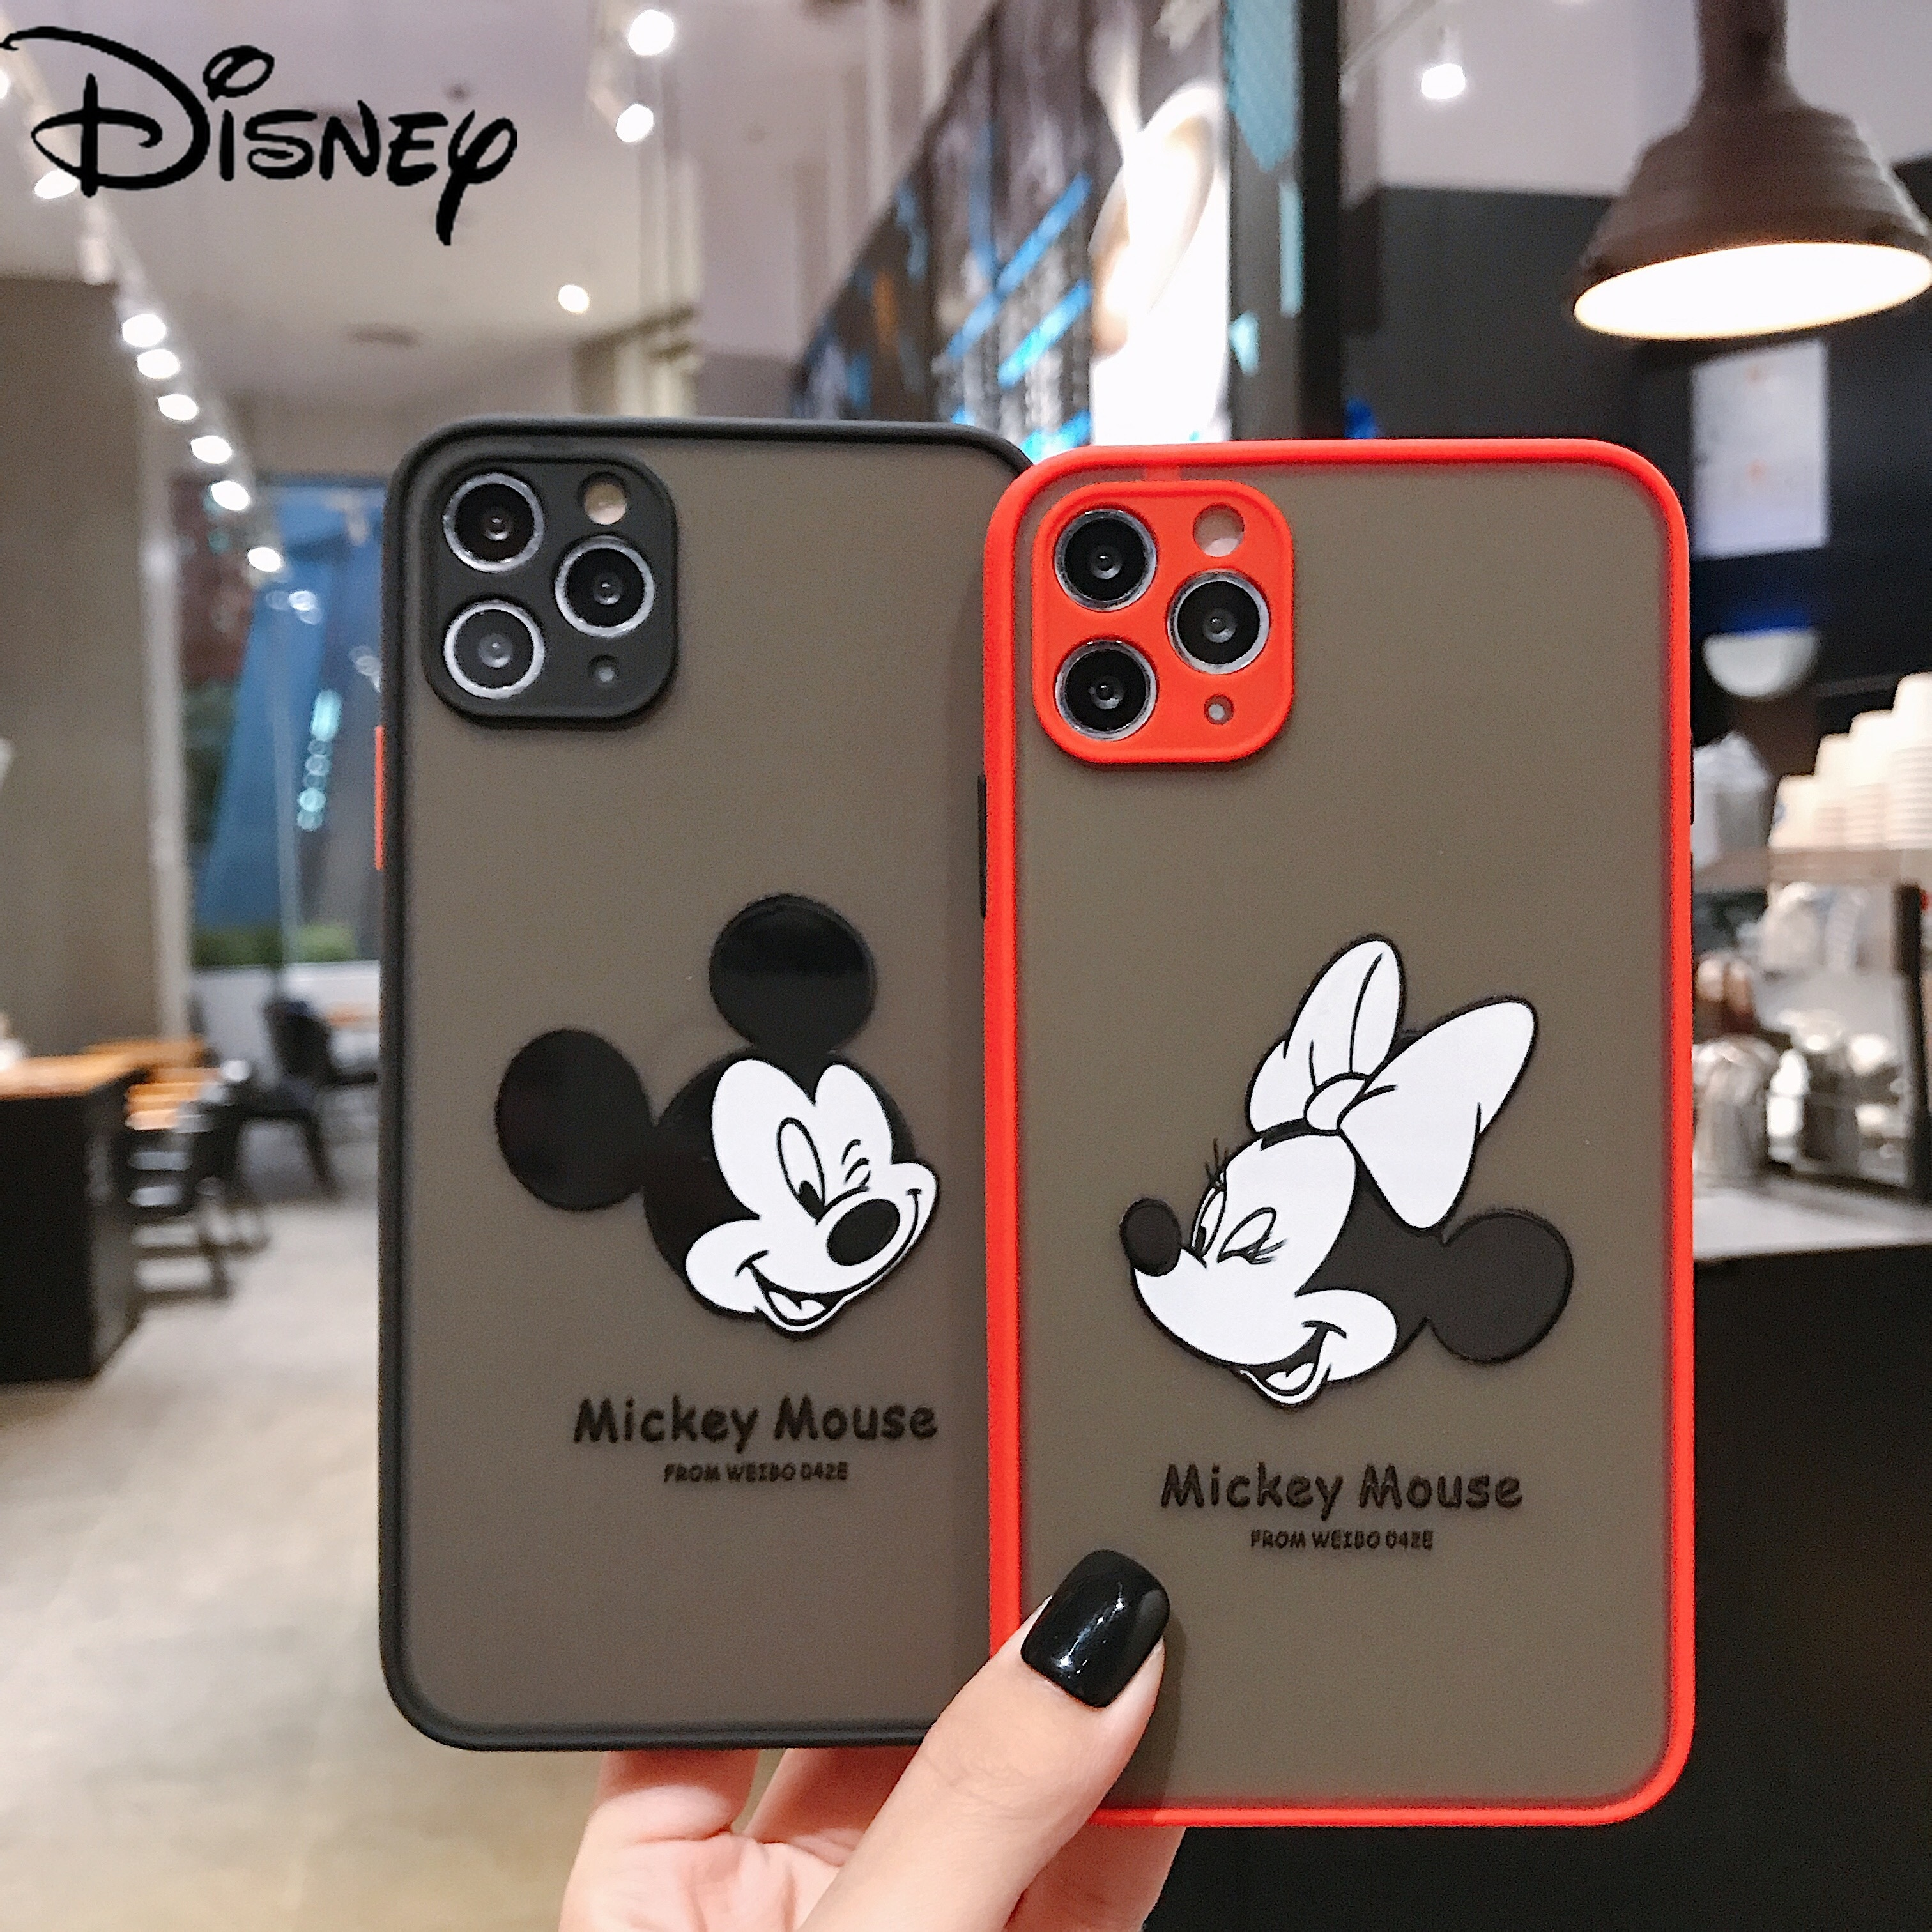 Disney for iPhone 7/8P / X / XRXS /MAX / 11/12 / Pro / 12min mobile phone mini mobile phone case cover 3D Stereo carving  - buy with discount